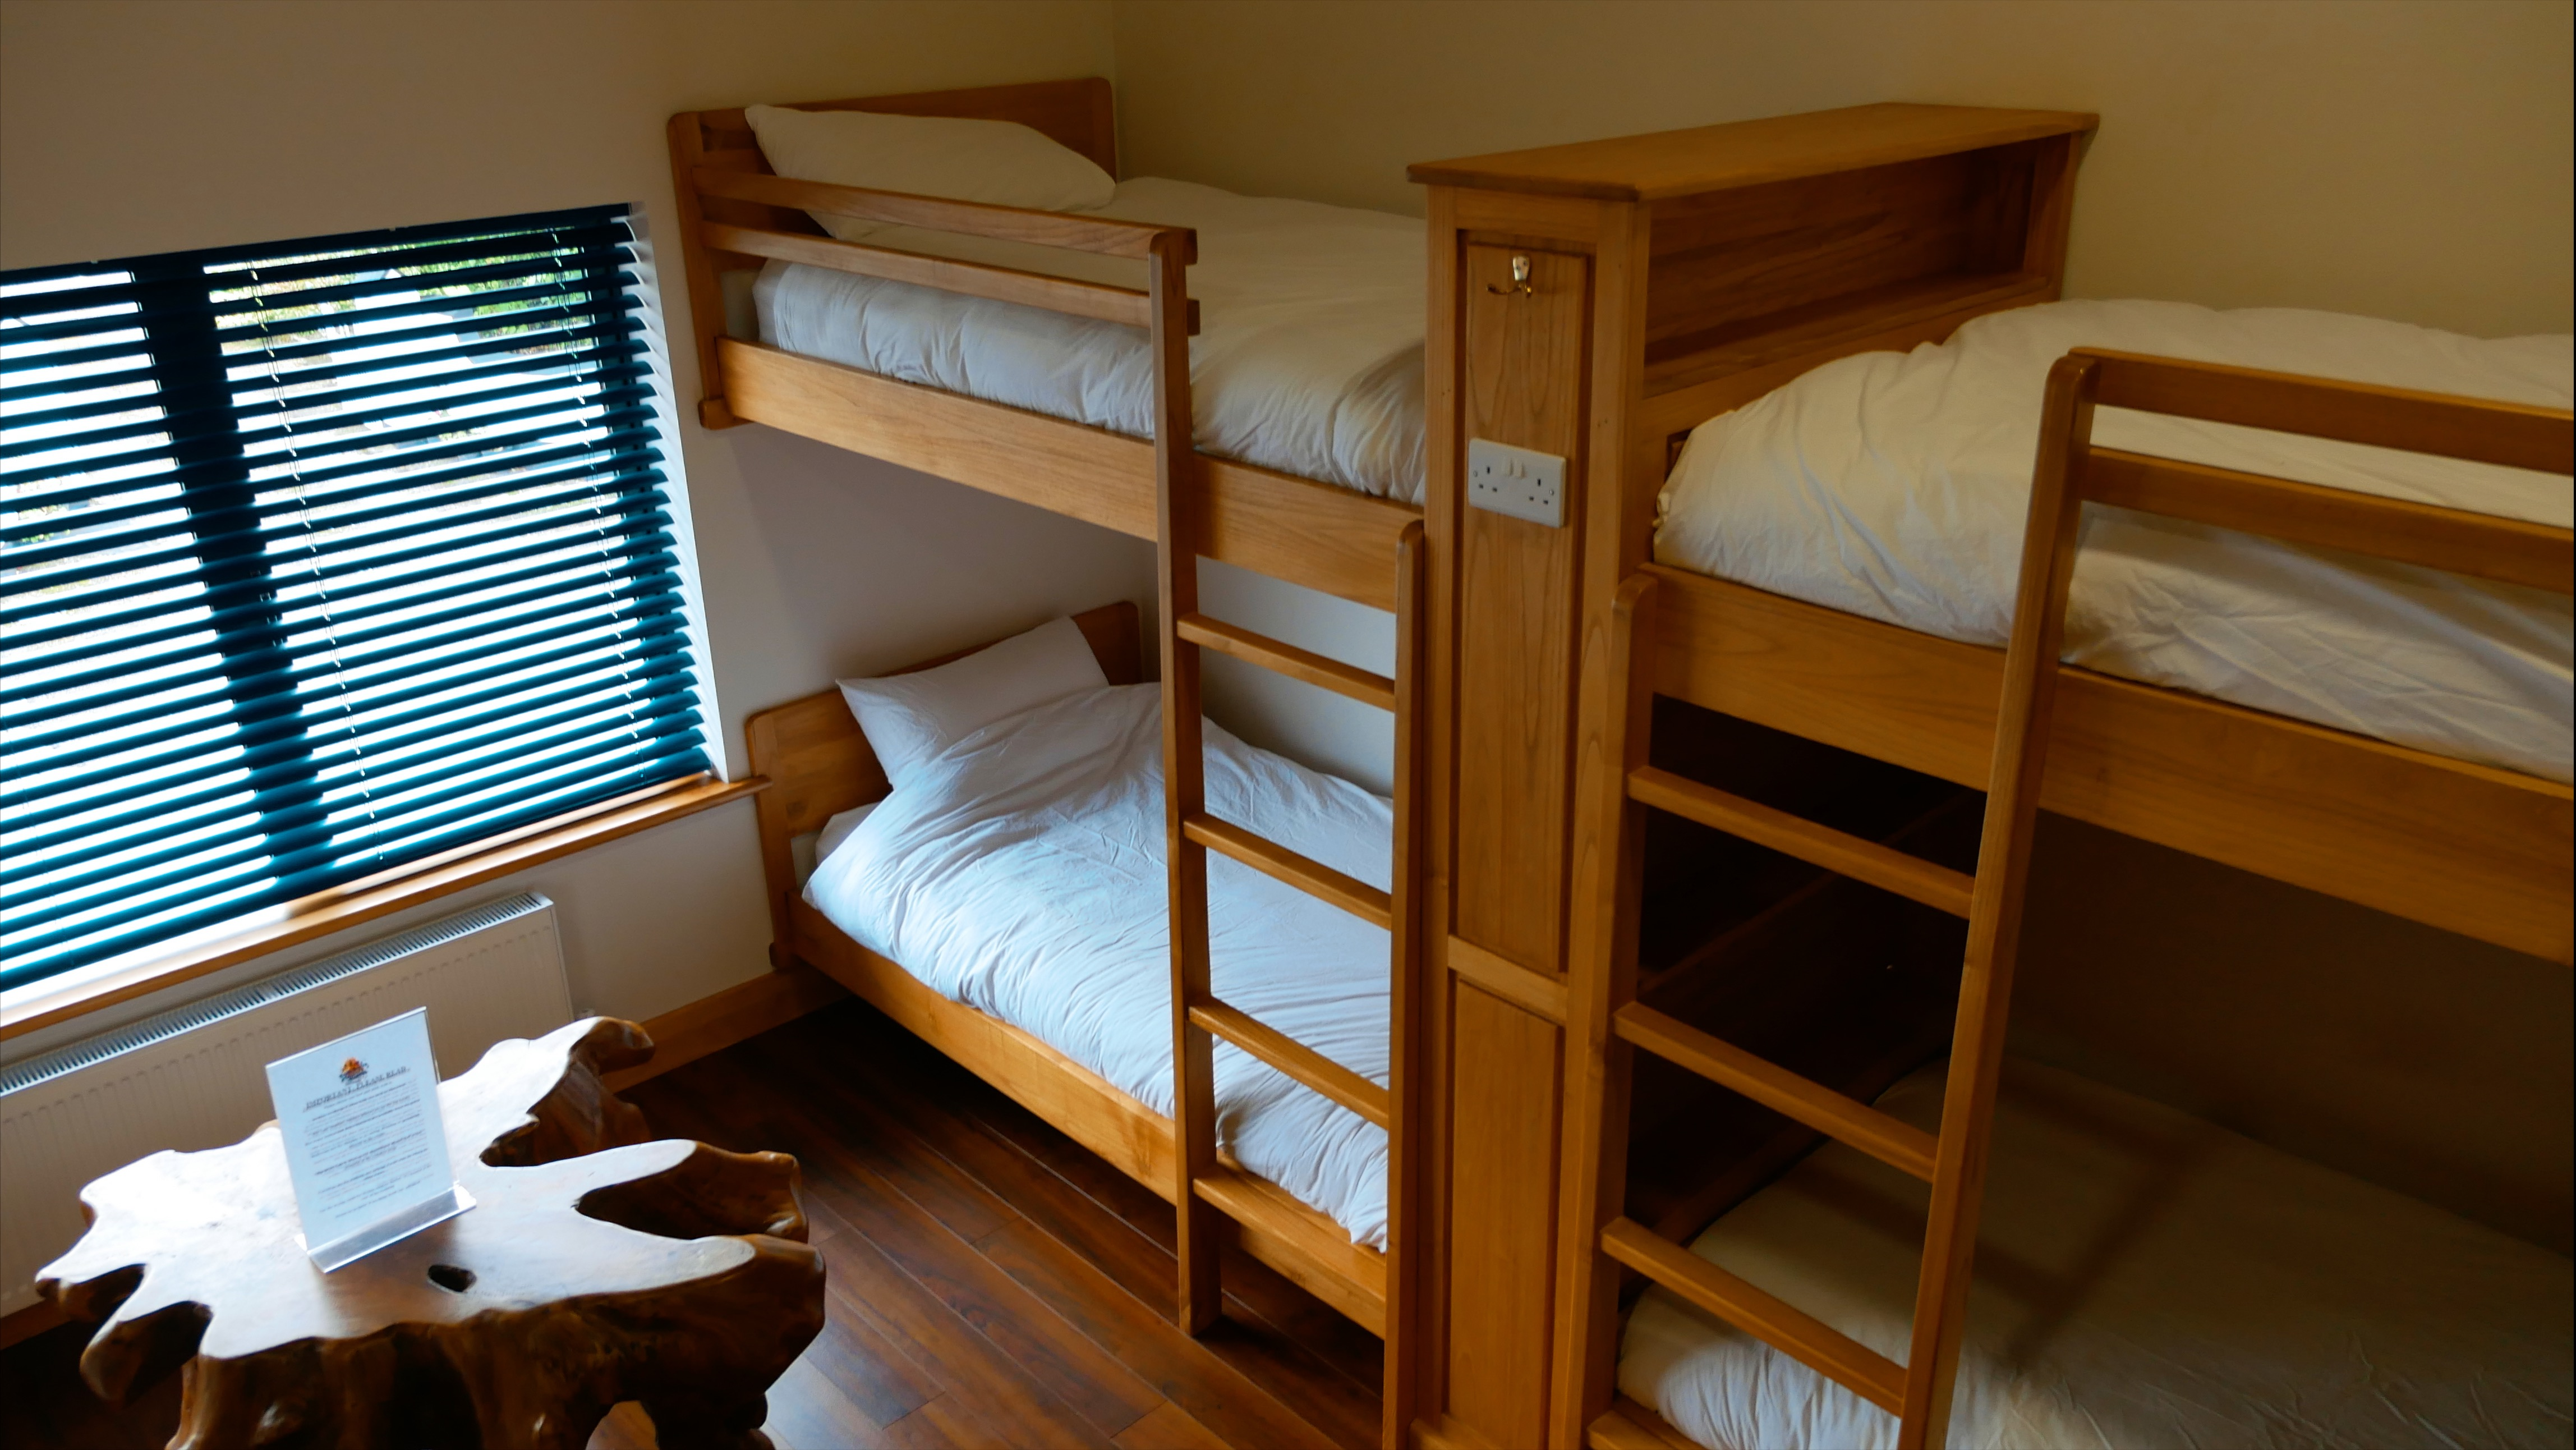 Ballyhoura Luxury Hostel